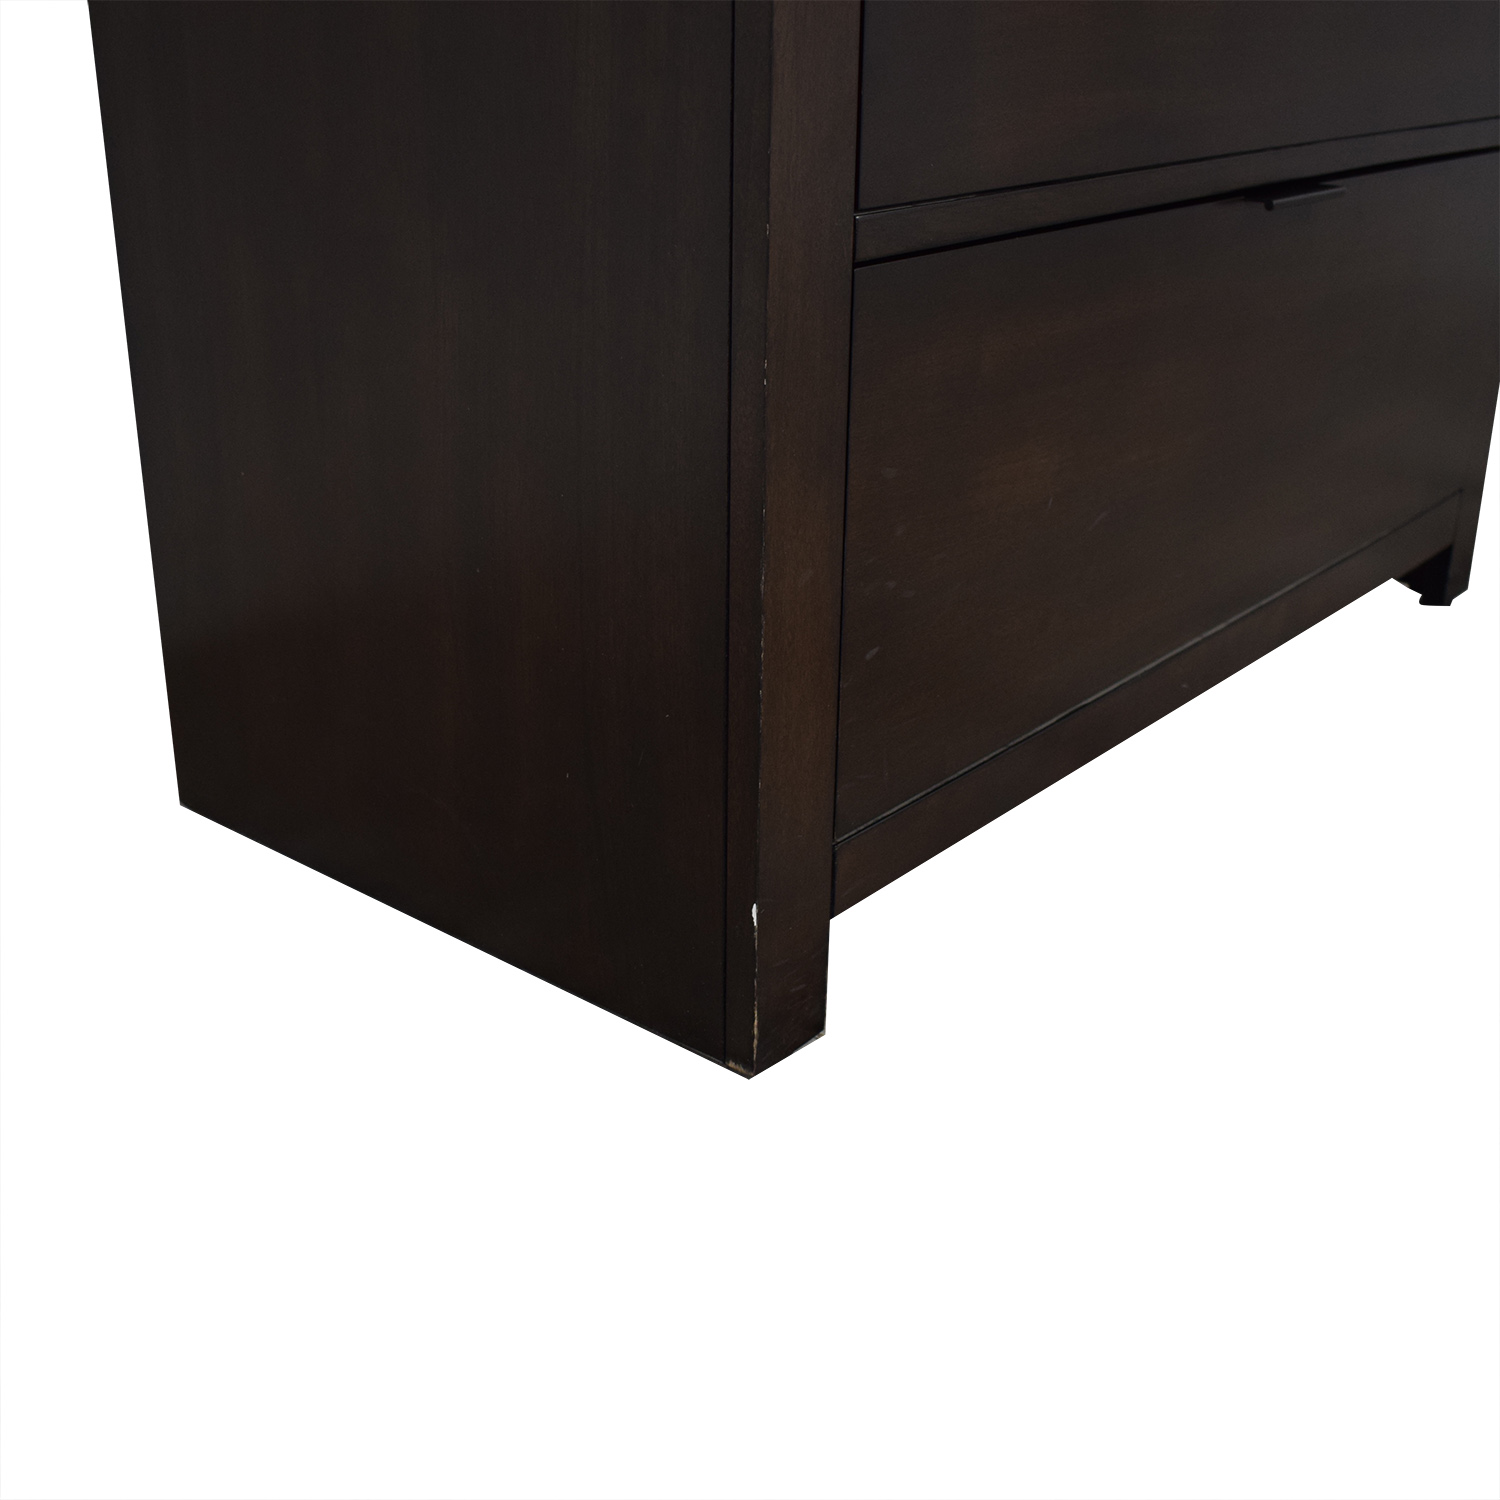 Macy's Macy's Tribeca Five Drawer Chest dimensions